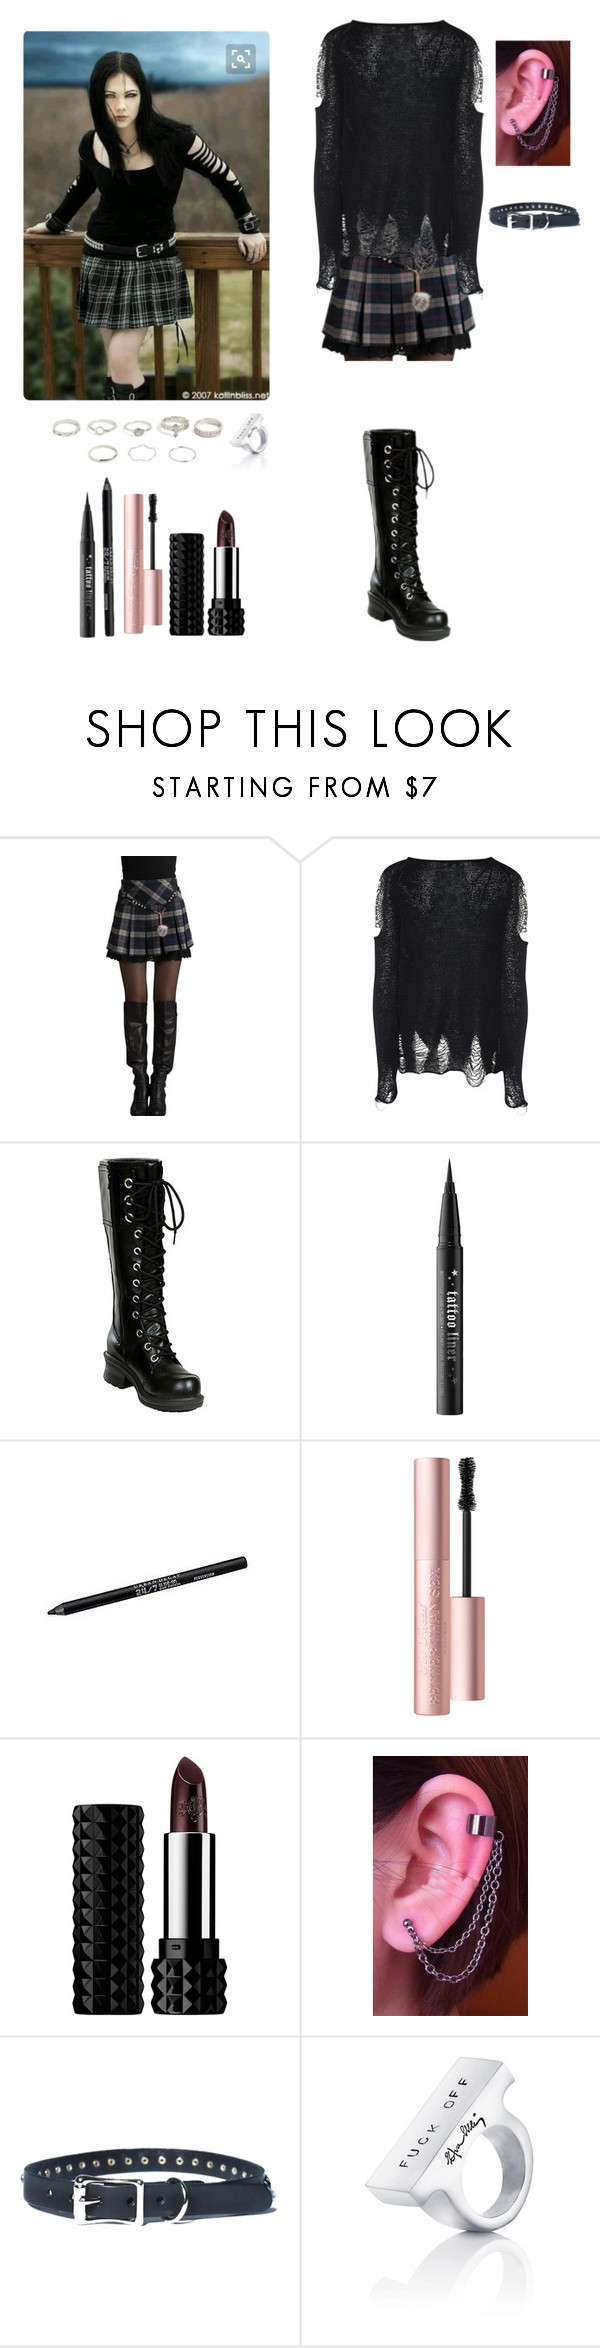 """""""You don't know sh*t about my father..."""" by darksnowwitch ❤ liked on Polyvore featuring Glamorous, Nana', Kat Von D, Urban Decay, Too Faced Cosmetics and BlindMagsOCoutfitsets"""